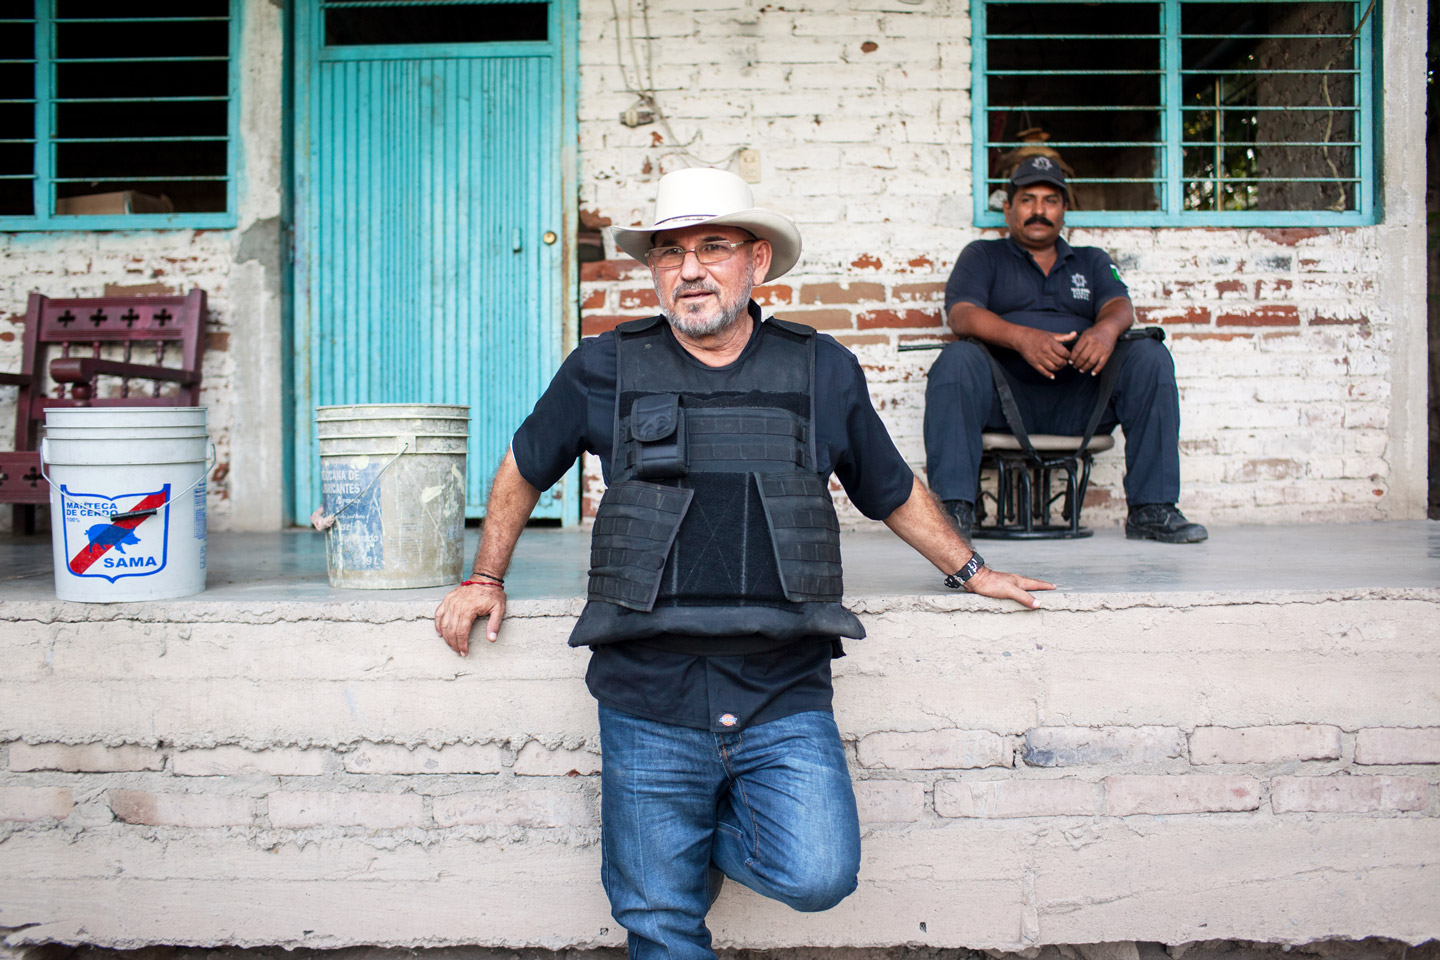 """Hipolito Mora rests at his families lime ranch in La Ruana, Michoacán, Mexico, Tuesday, December 15, 2015. Hipolito Mora was one of the original founder of the autodefensa movement, which saw vigilantes spread across the state of Michoacán and drive out the cartel group the 'Knights of Templar'. Since the uprising began in 2013, other criminal groups have filled the space of the previous cartel and many look at the autodefensa movement as a failure. Mora has had many challenges over the last three years, including being sent to jail twice and having his son killed in a shootout Dec. 16, 2014 during a shootout with a rival group.  This ranch is a very important place for Mora. """"This is where I expect to die"""" said Mora, motioning to the hills surrounding the ranch, which would make for a great spot for a shooter to hide. """"My son and I had plans to build up the house and make this out place, it was out dream, but that was before."""" (Brett Gundlock/Boreal Collective)"""